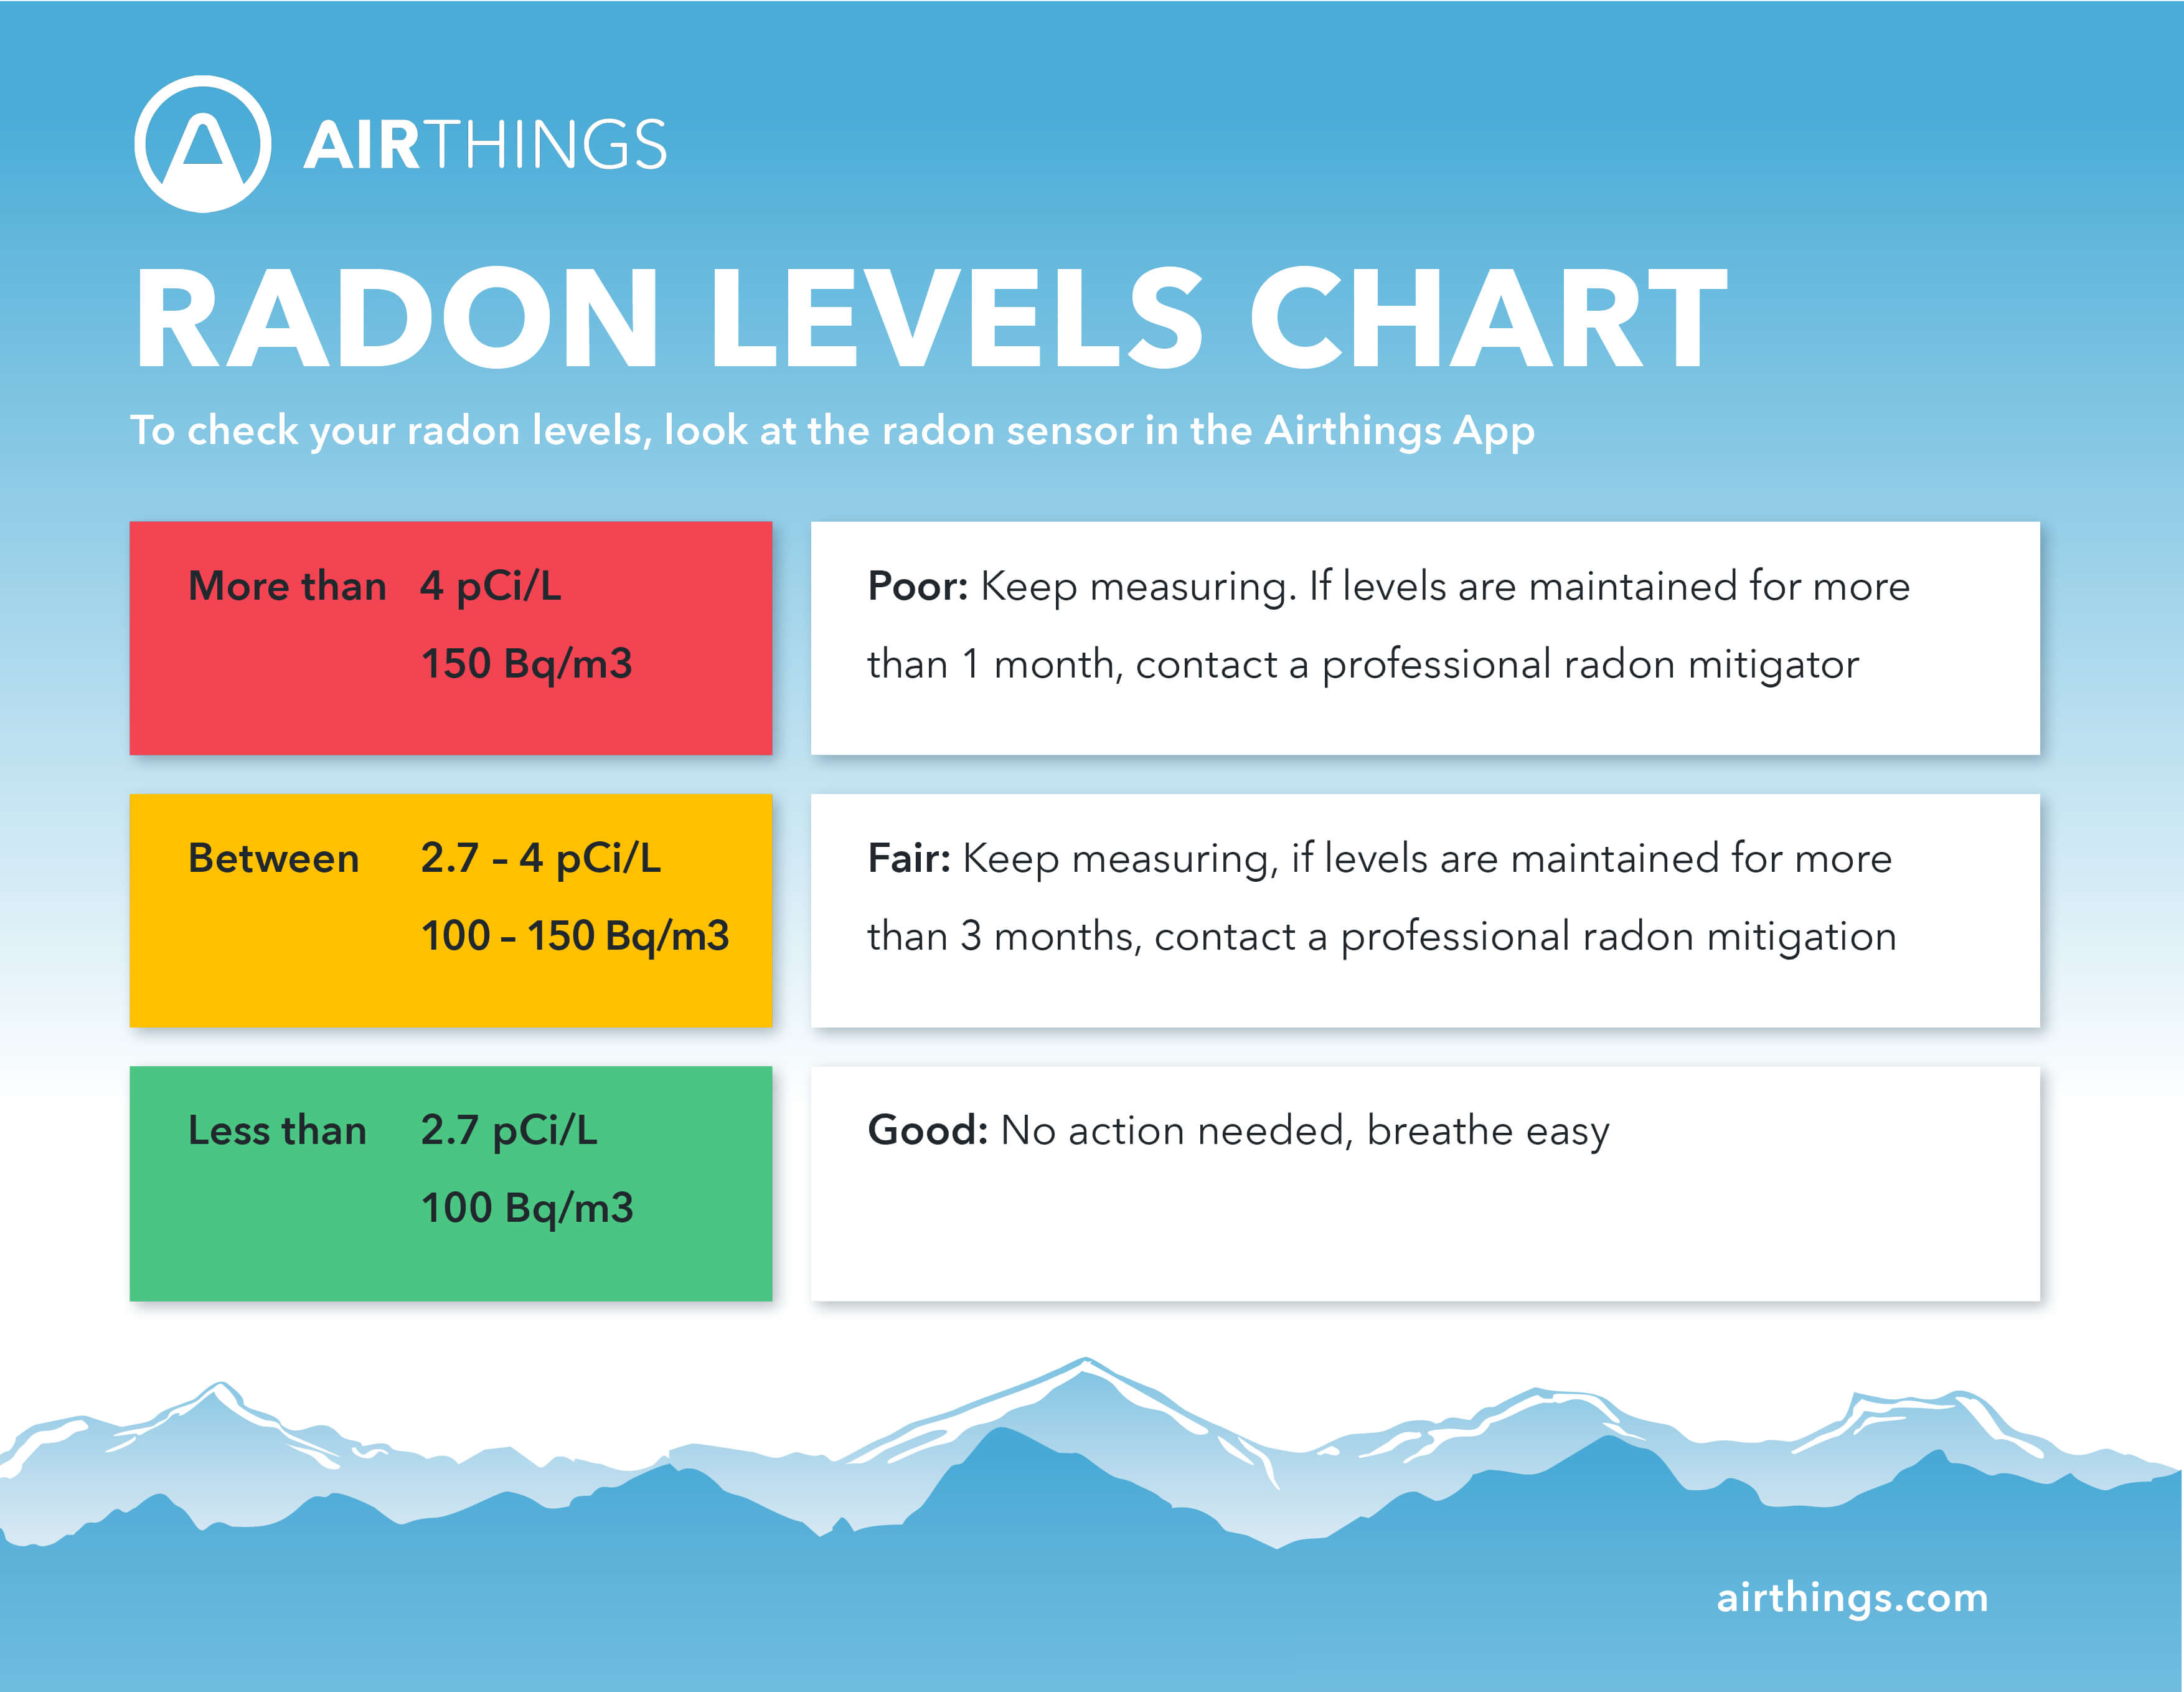 Radon level chart